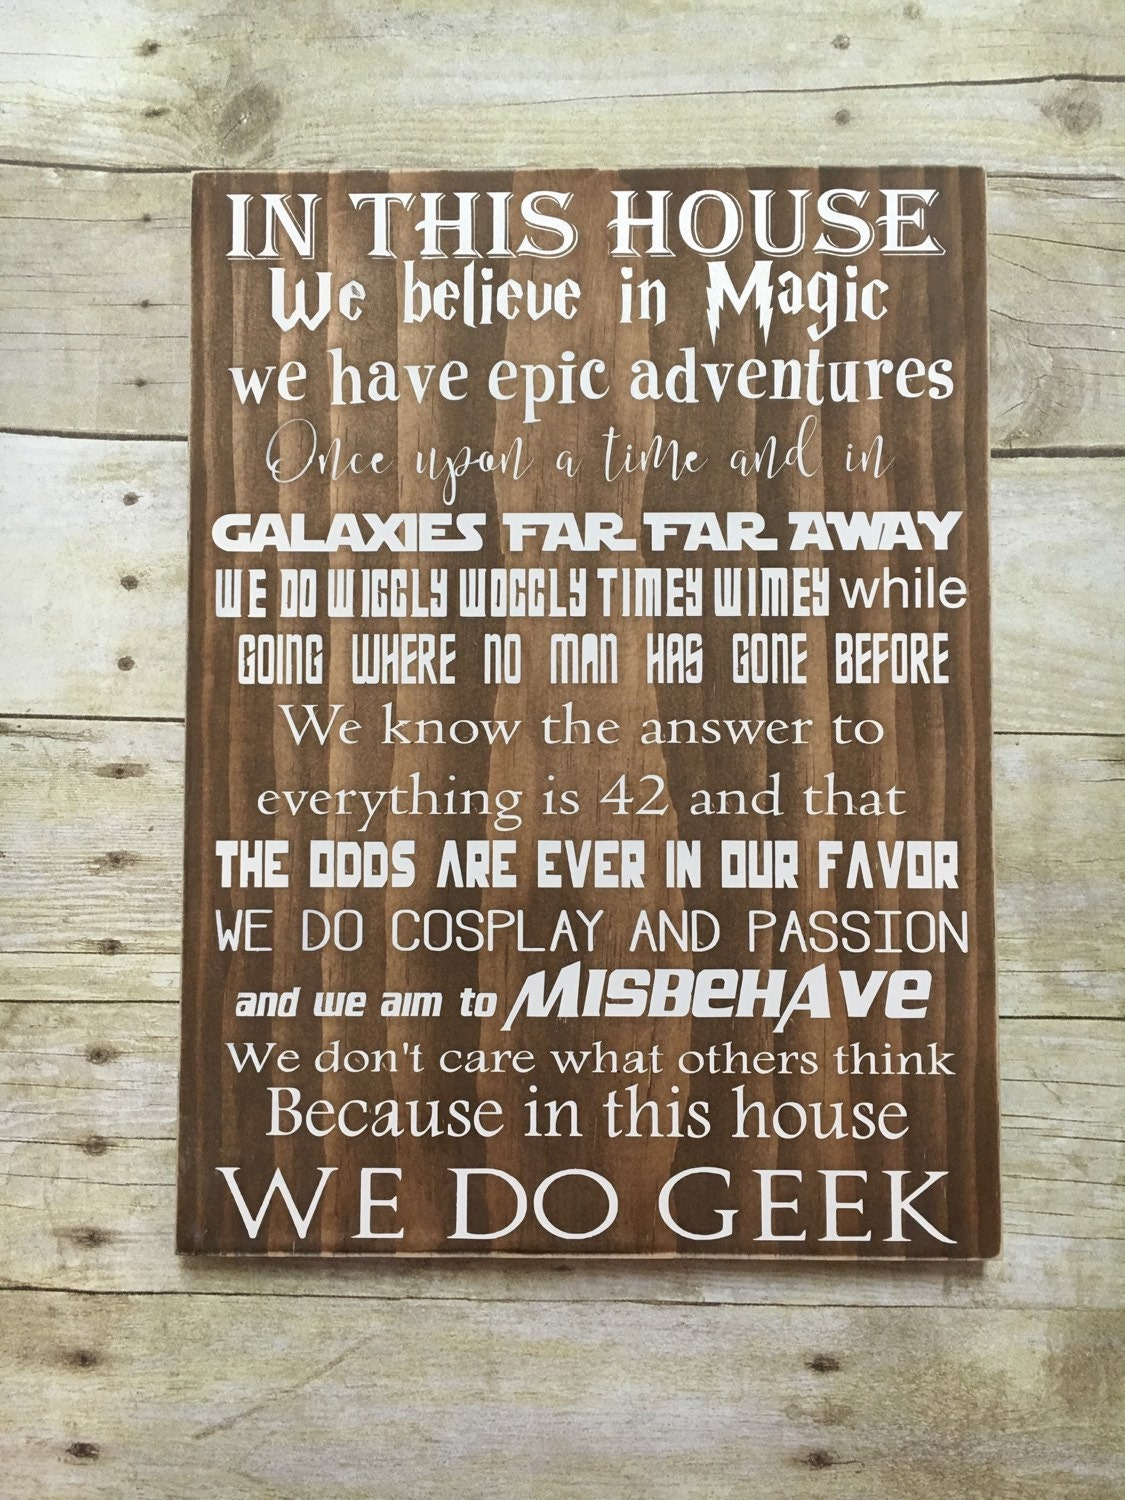 This House With Bluestone Walls Overlooks The Landscape: In This House We Do Geek Wood Sign 12x15 12x20 Birthday